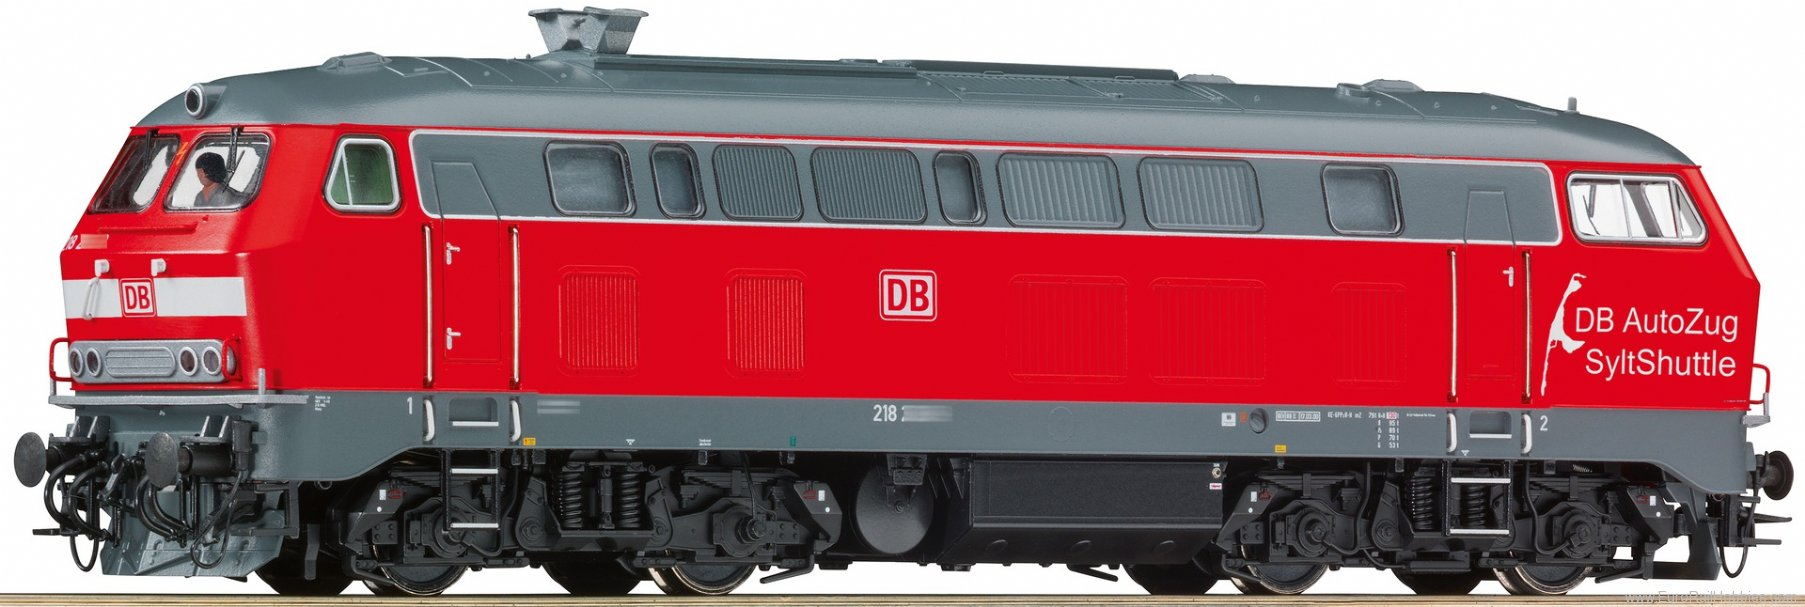 Roco 73729 Diesel Locomotive BR 218, DB AG (Digital Soun